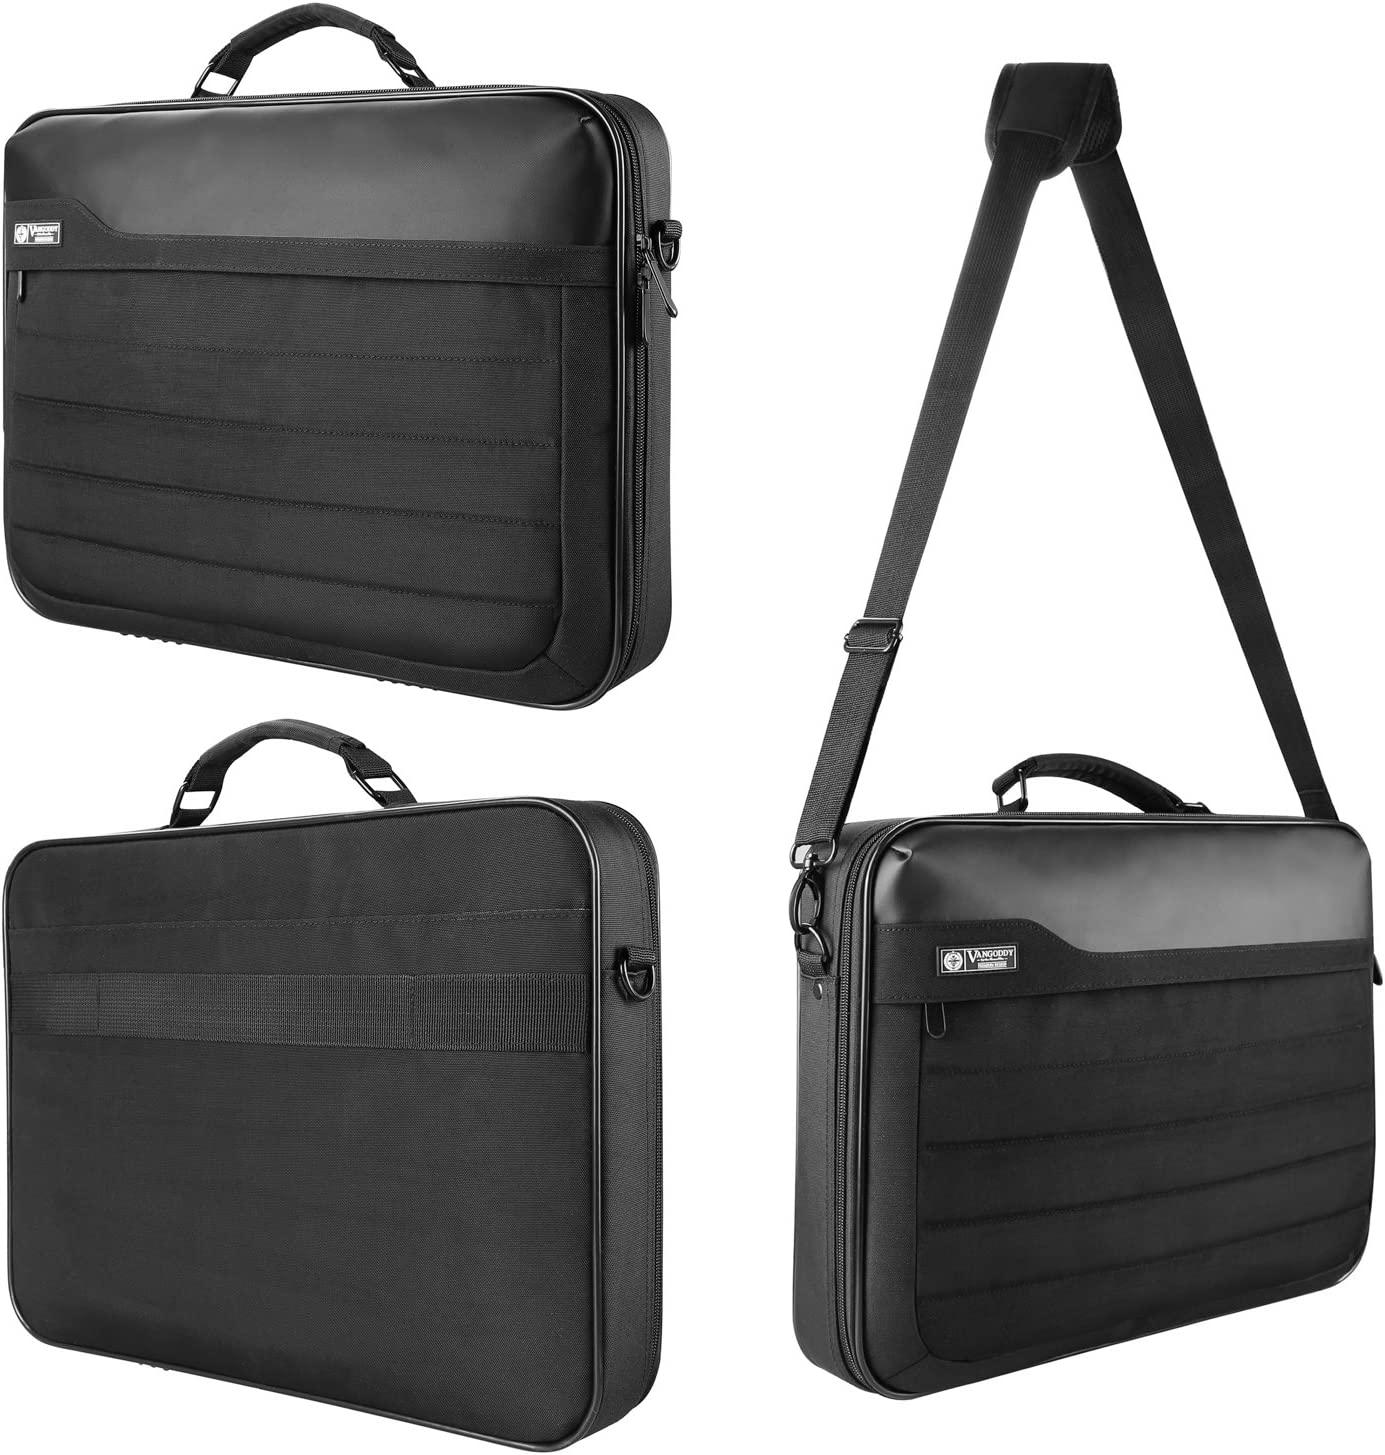 Wireless Mouse Envy x2 Casual Laptop Shoulder Carrying Bags for HP ChromeBook x360 Elite x2 Headphone Spectre x2 Pro x2